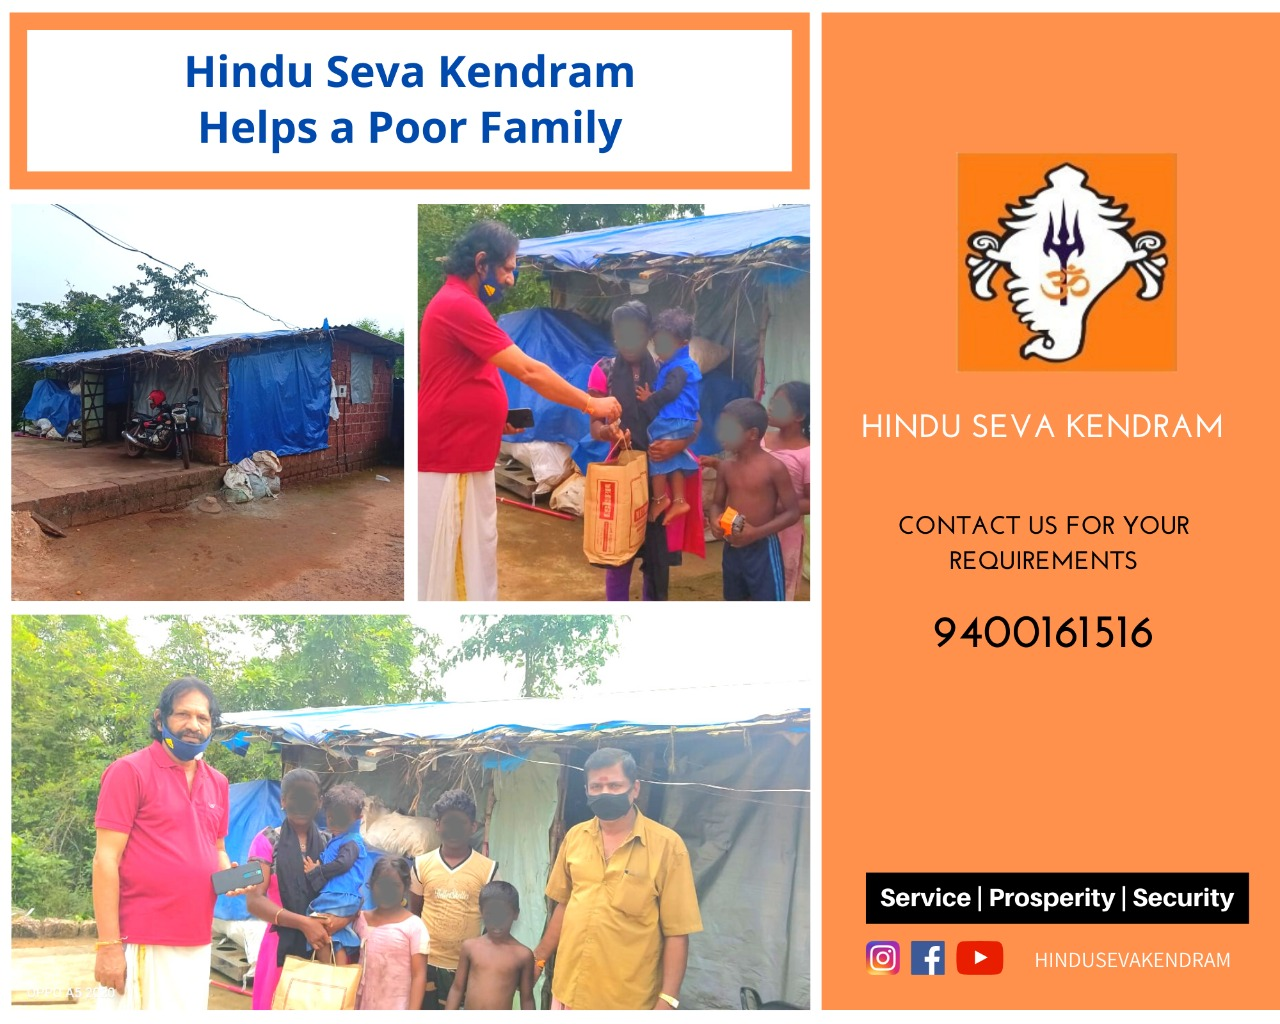 Hindu Seva Kendram Helps a Poor Family